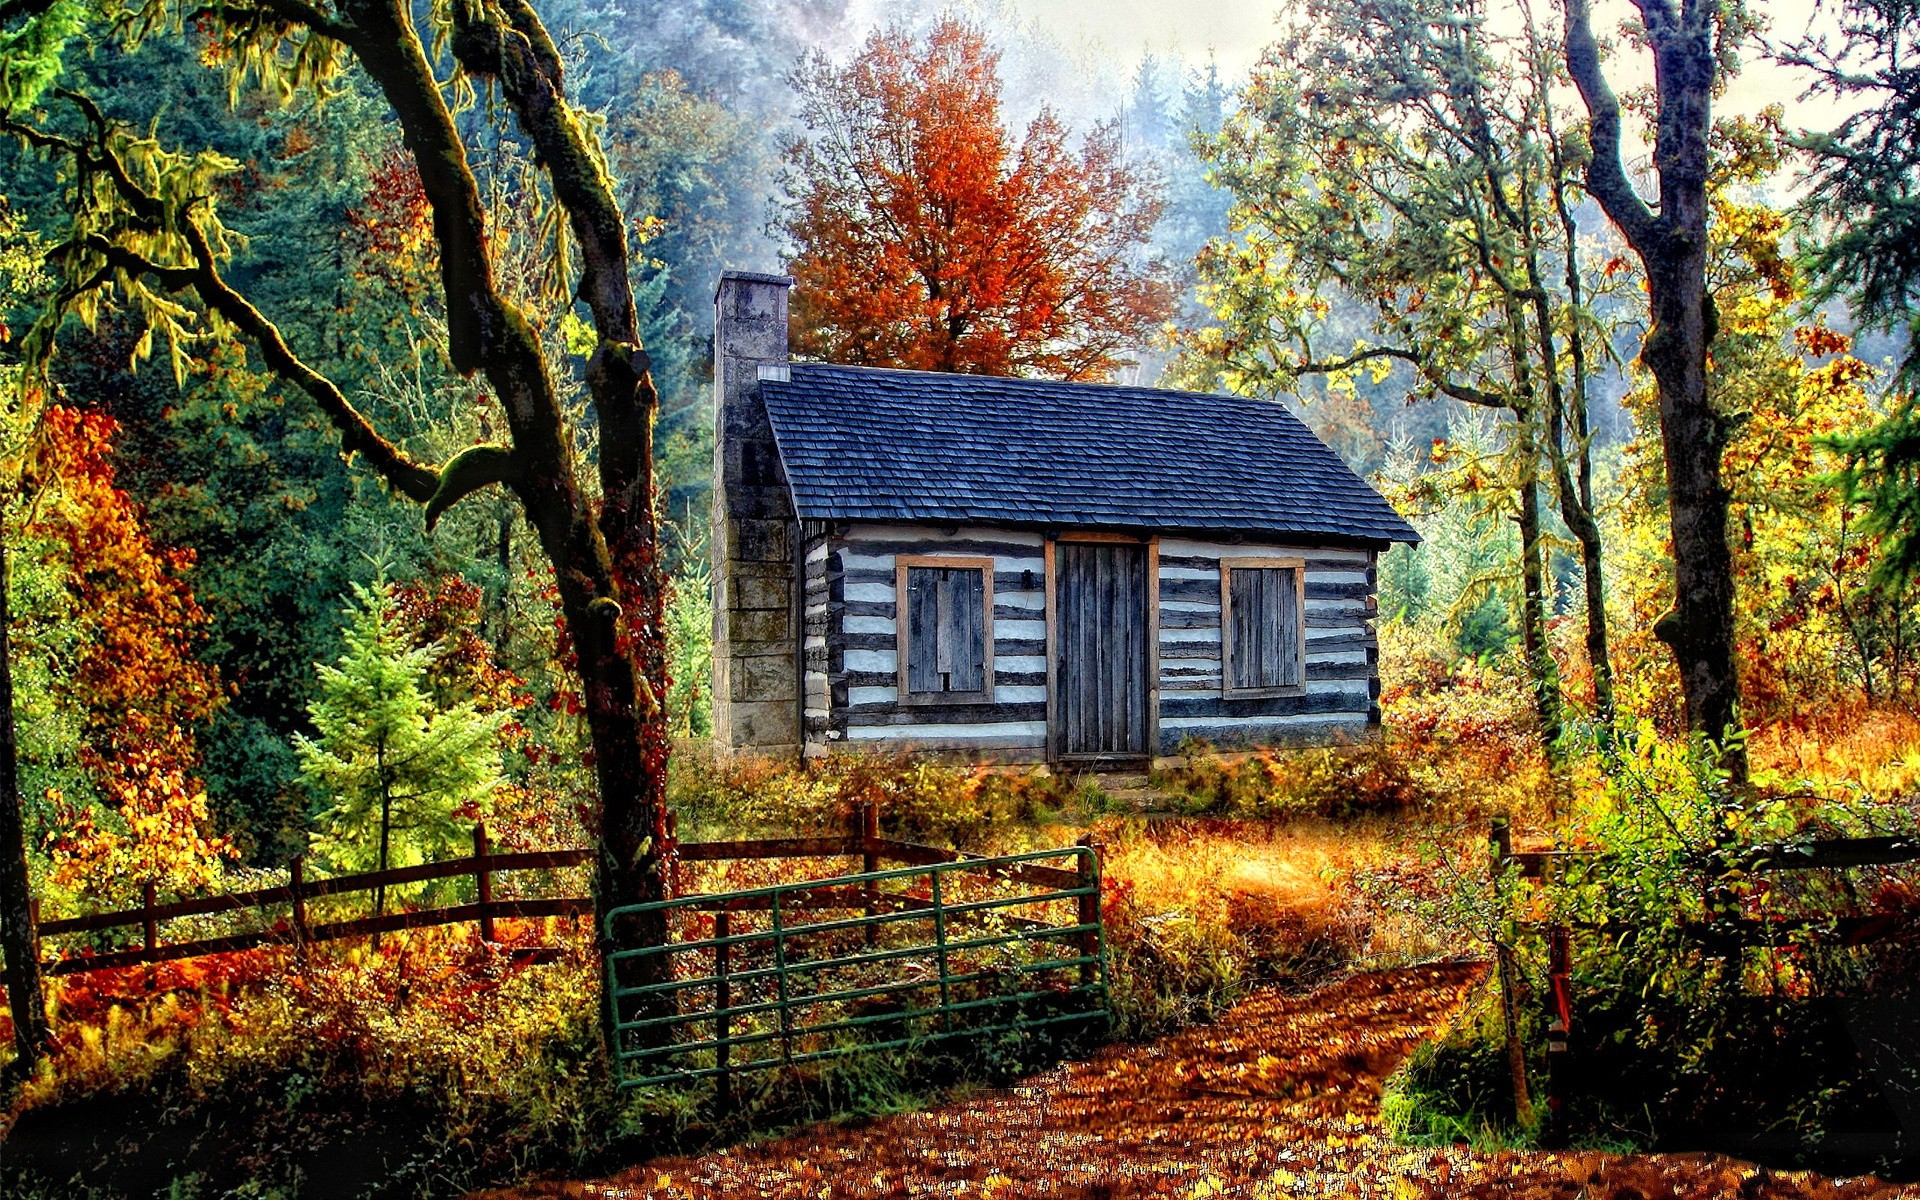 Forests: Foliage Autumn Cottage Fall Cabin Colorful Path Nature ...